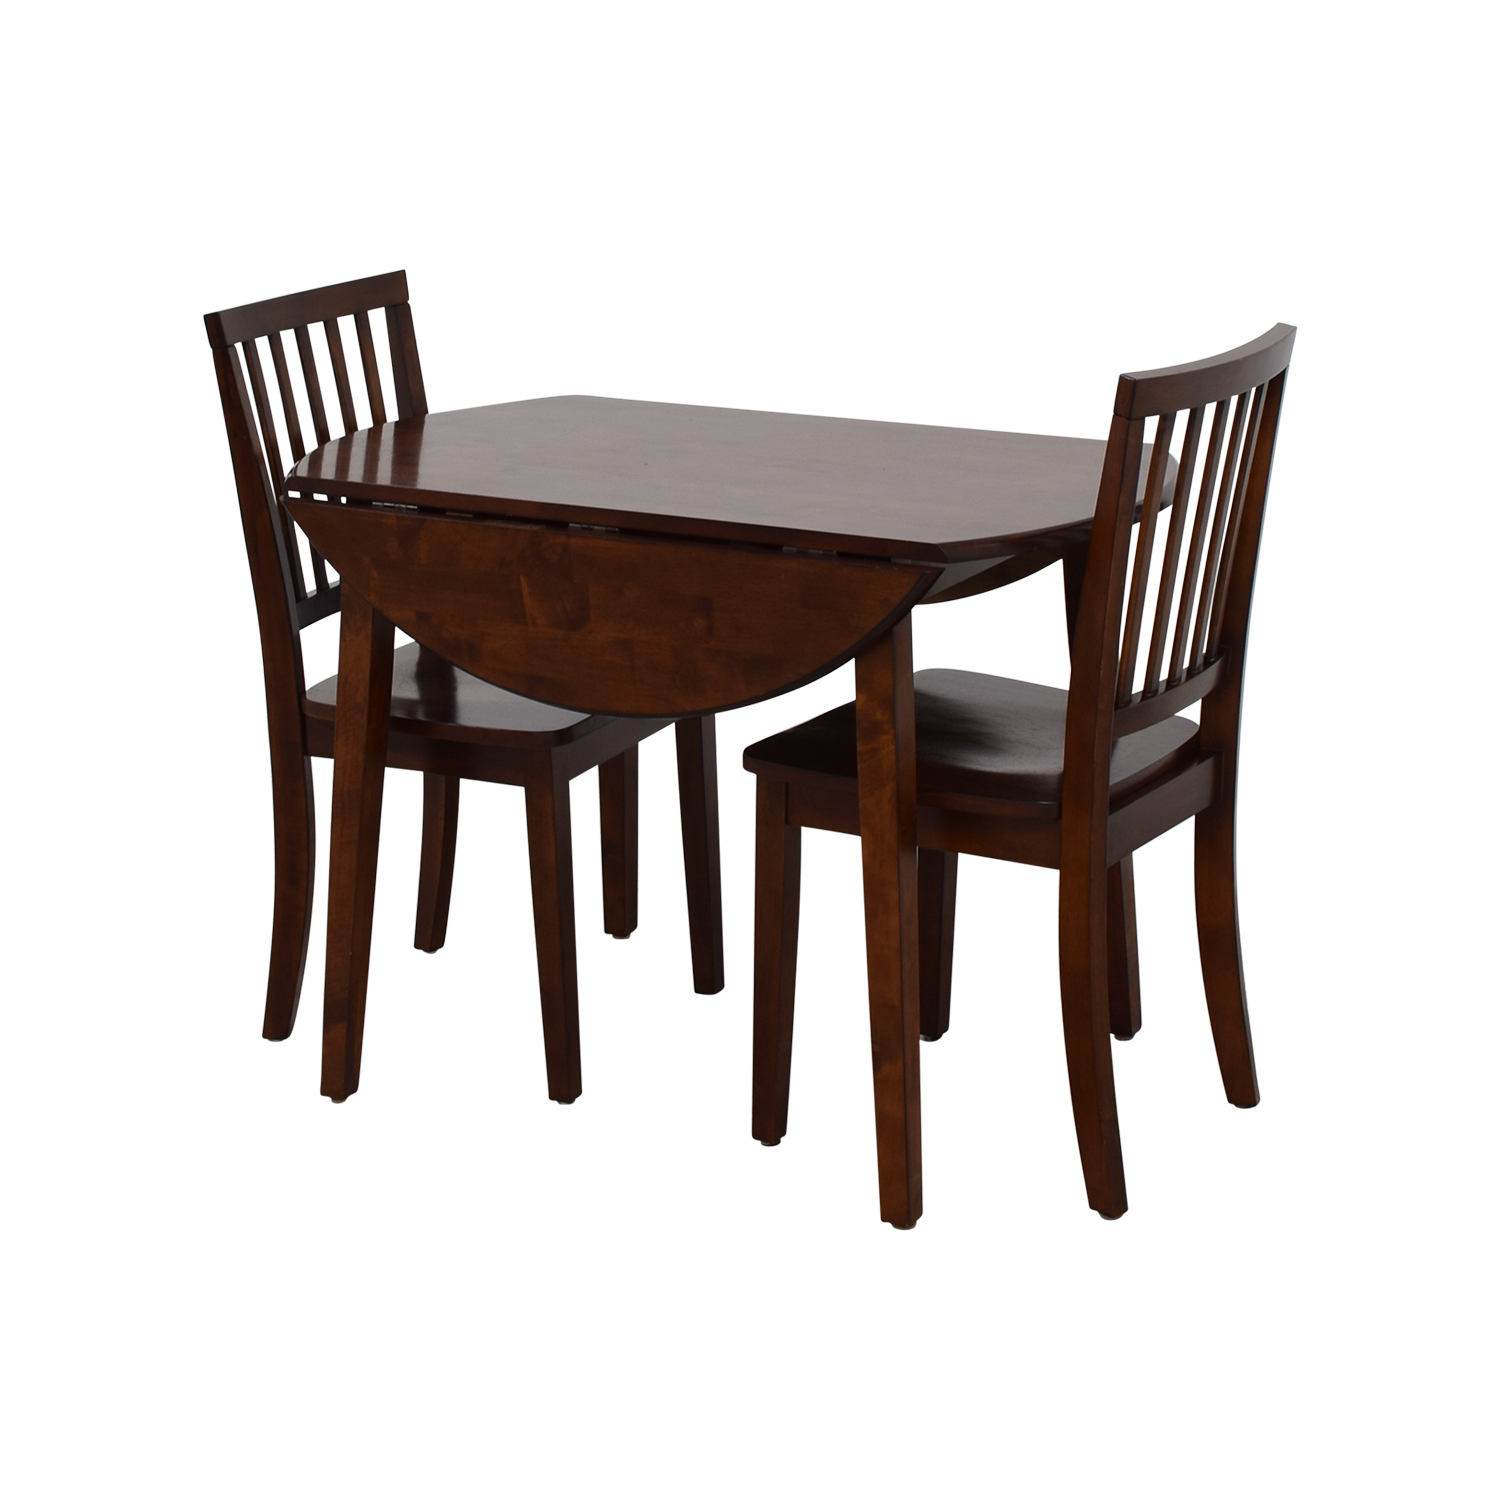 Breakfast Table and Chairs coupon